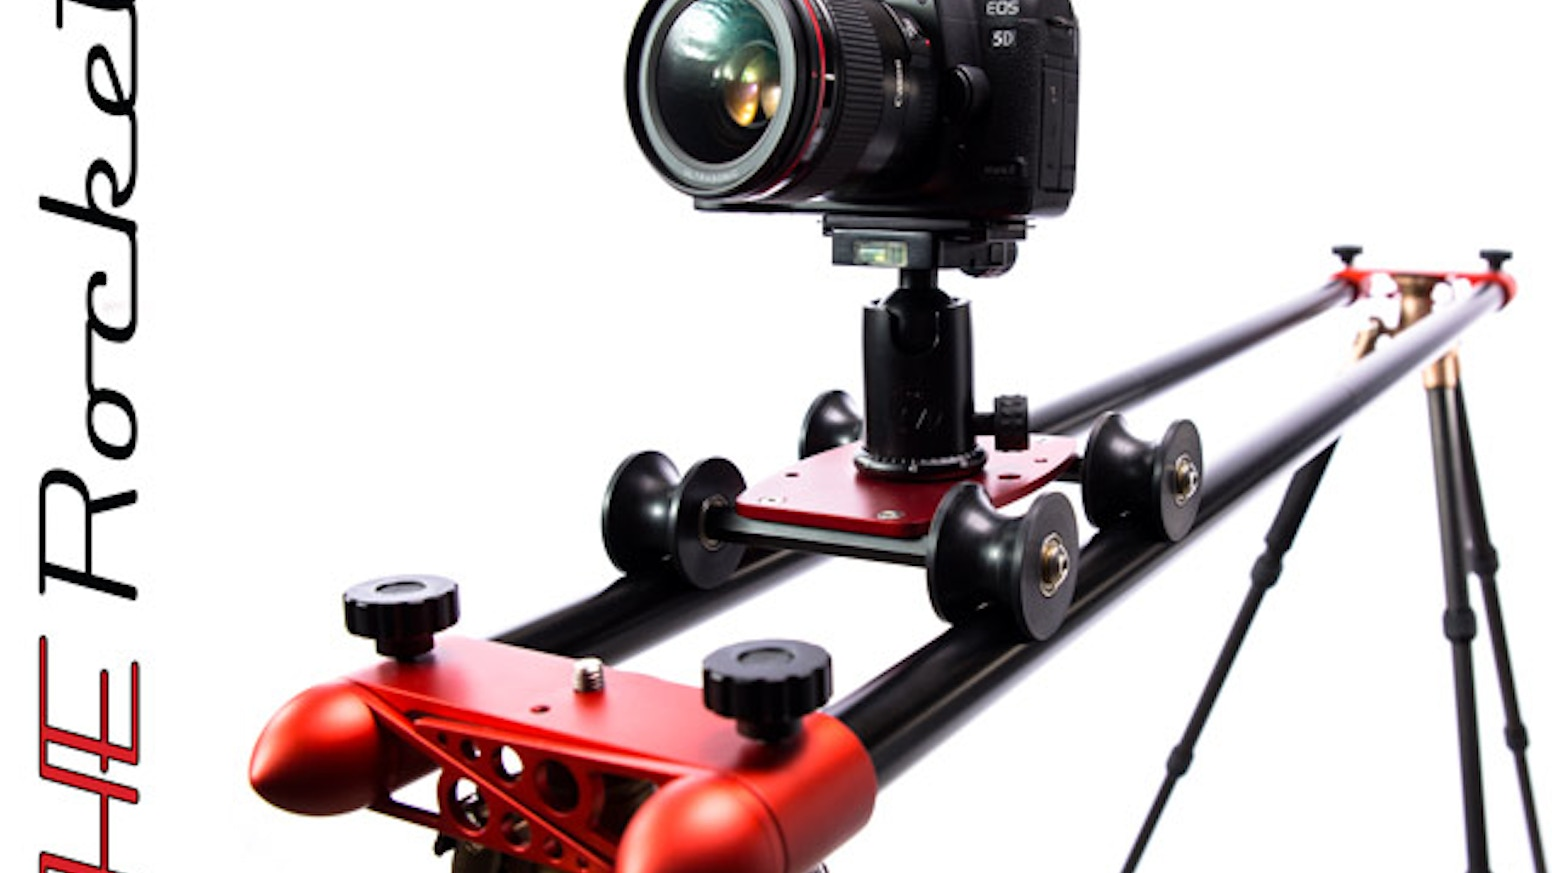 Get SUPER SMOOTH dolly shots up to 10 feet long with this easy to use slider that compacts down to the size of a shoe box!